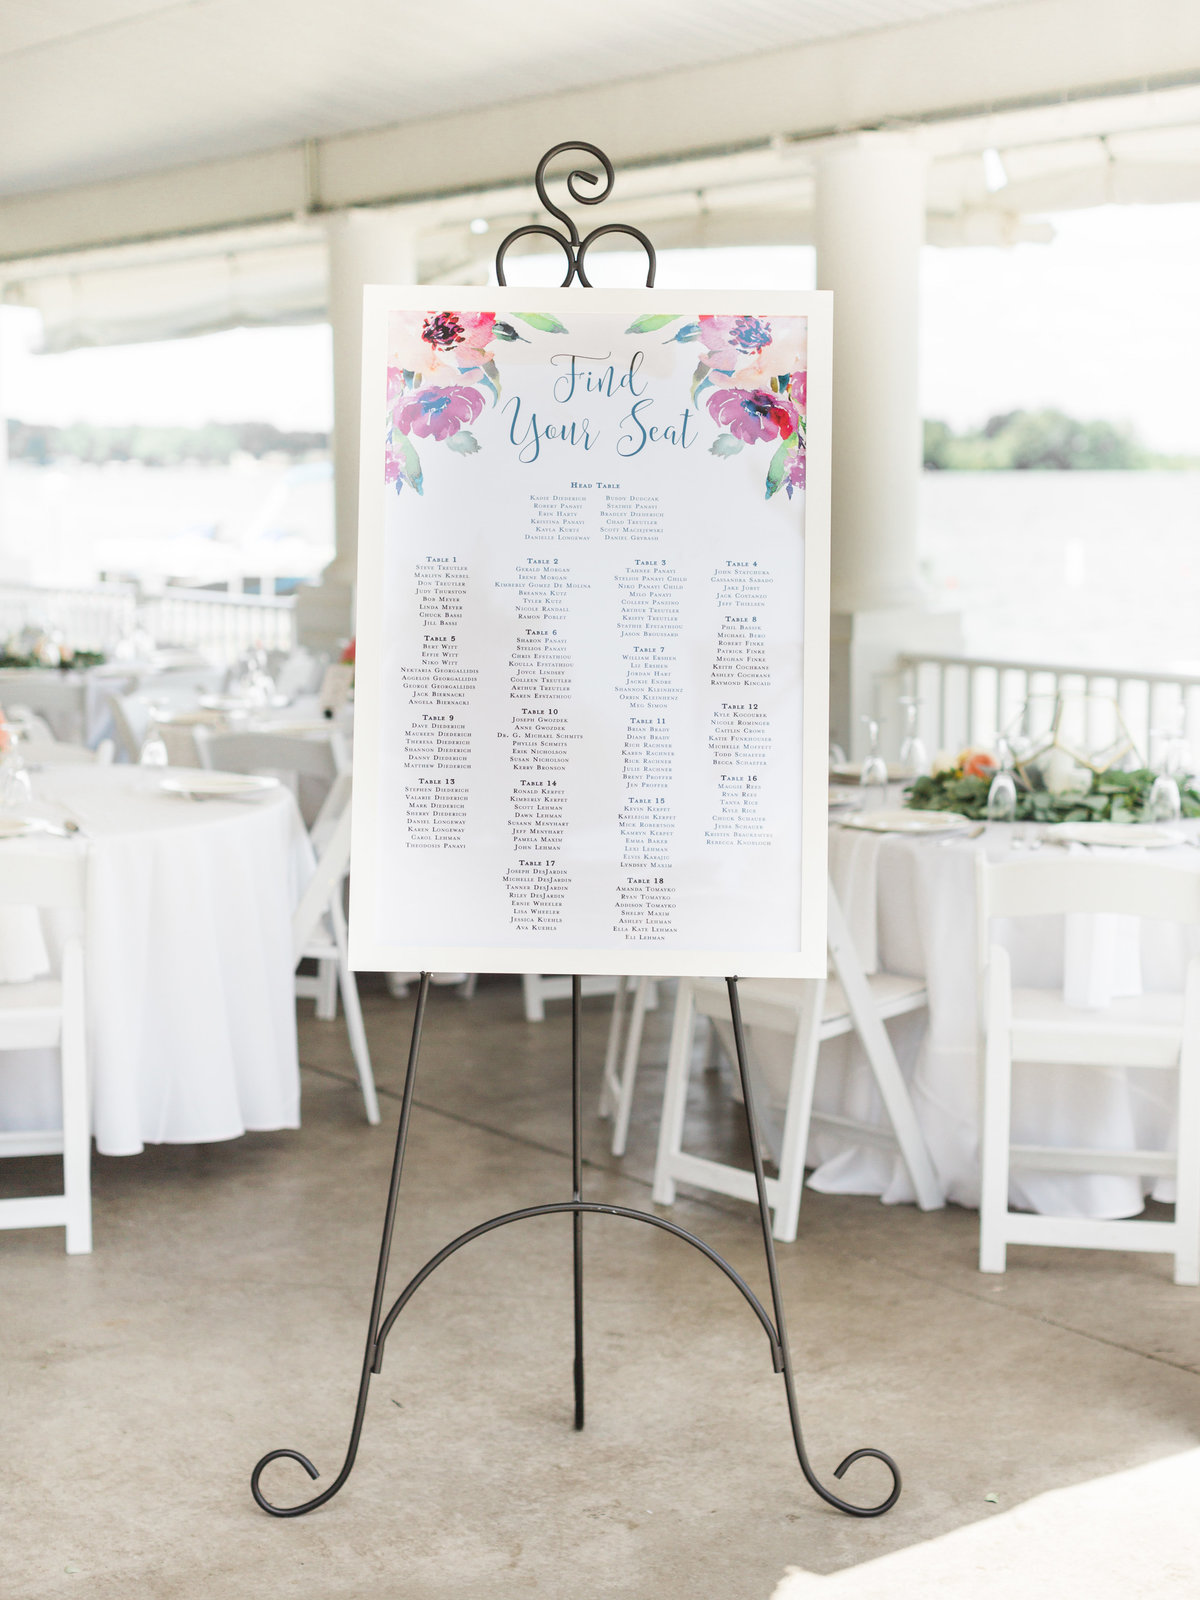 Every Little Detail - Michigan Wedding Planning and Event Design29